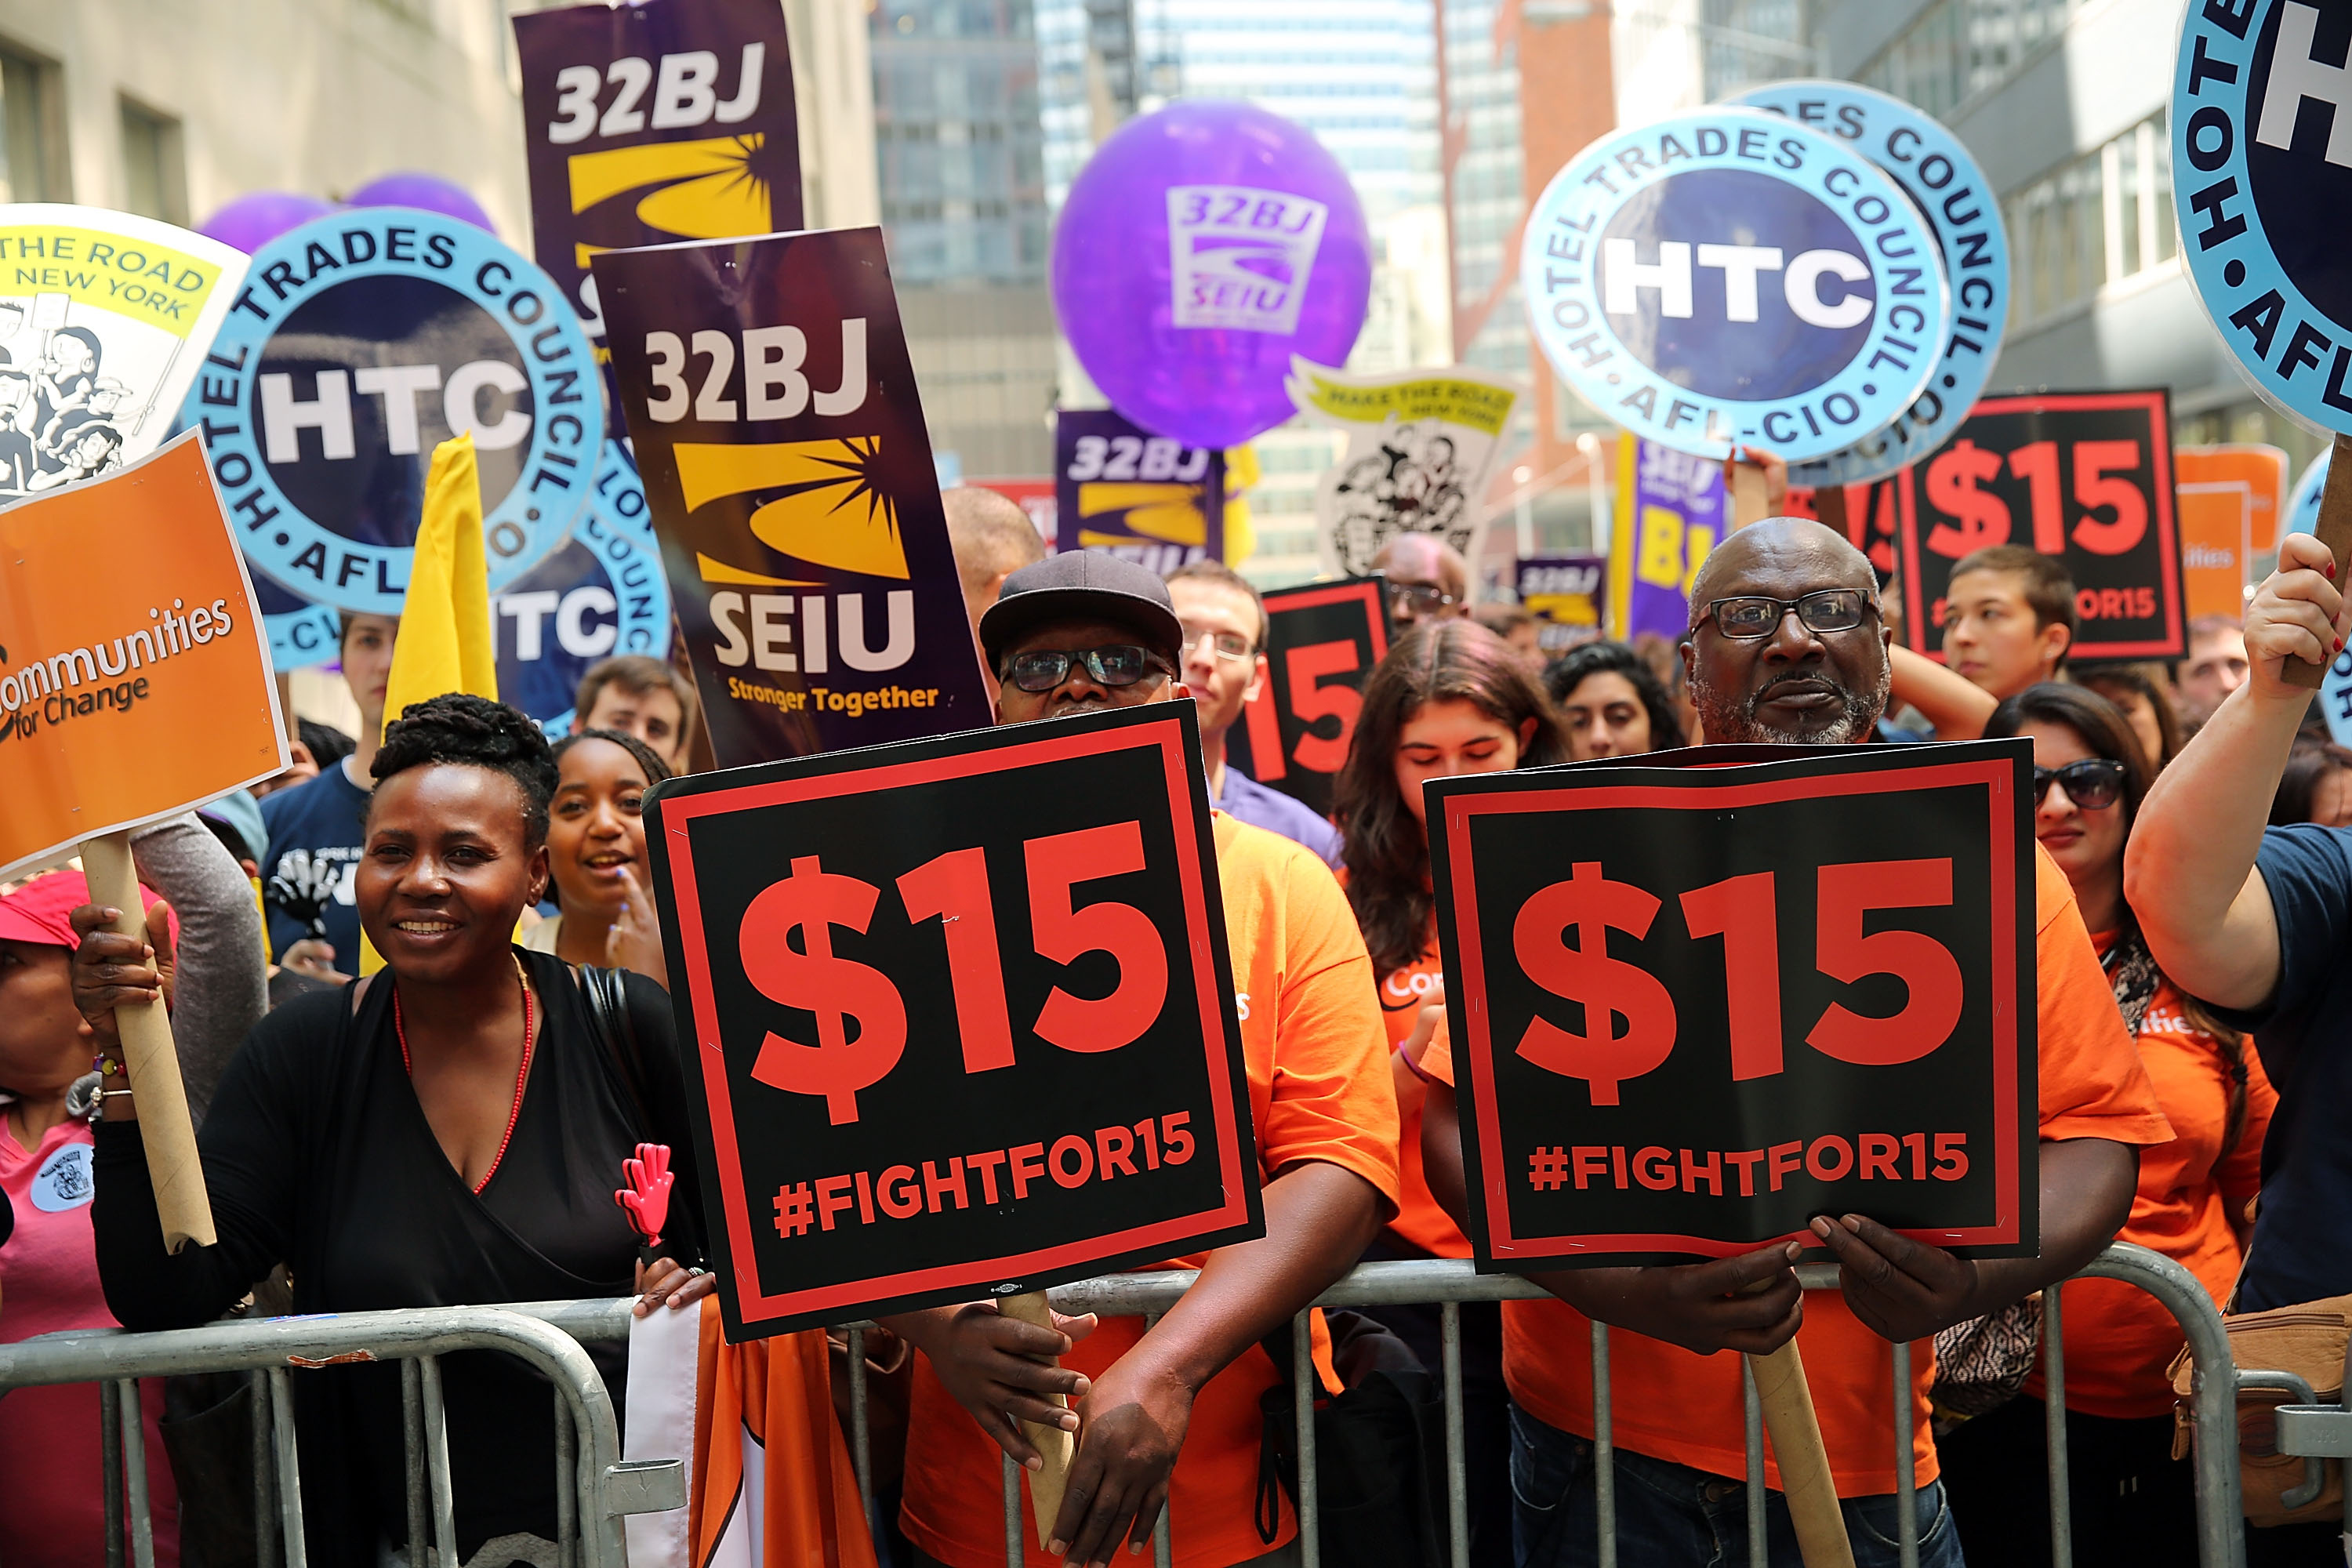 Labor leaders, workers and activists attend  a rally for a $15 minimum hourly wage on July 22, 2015 in New York City.  (Photo by Spencer Platt/Getty Images)